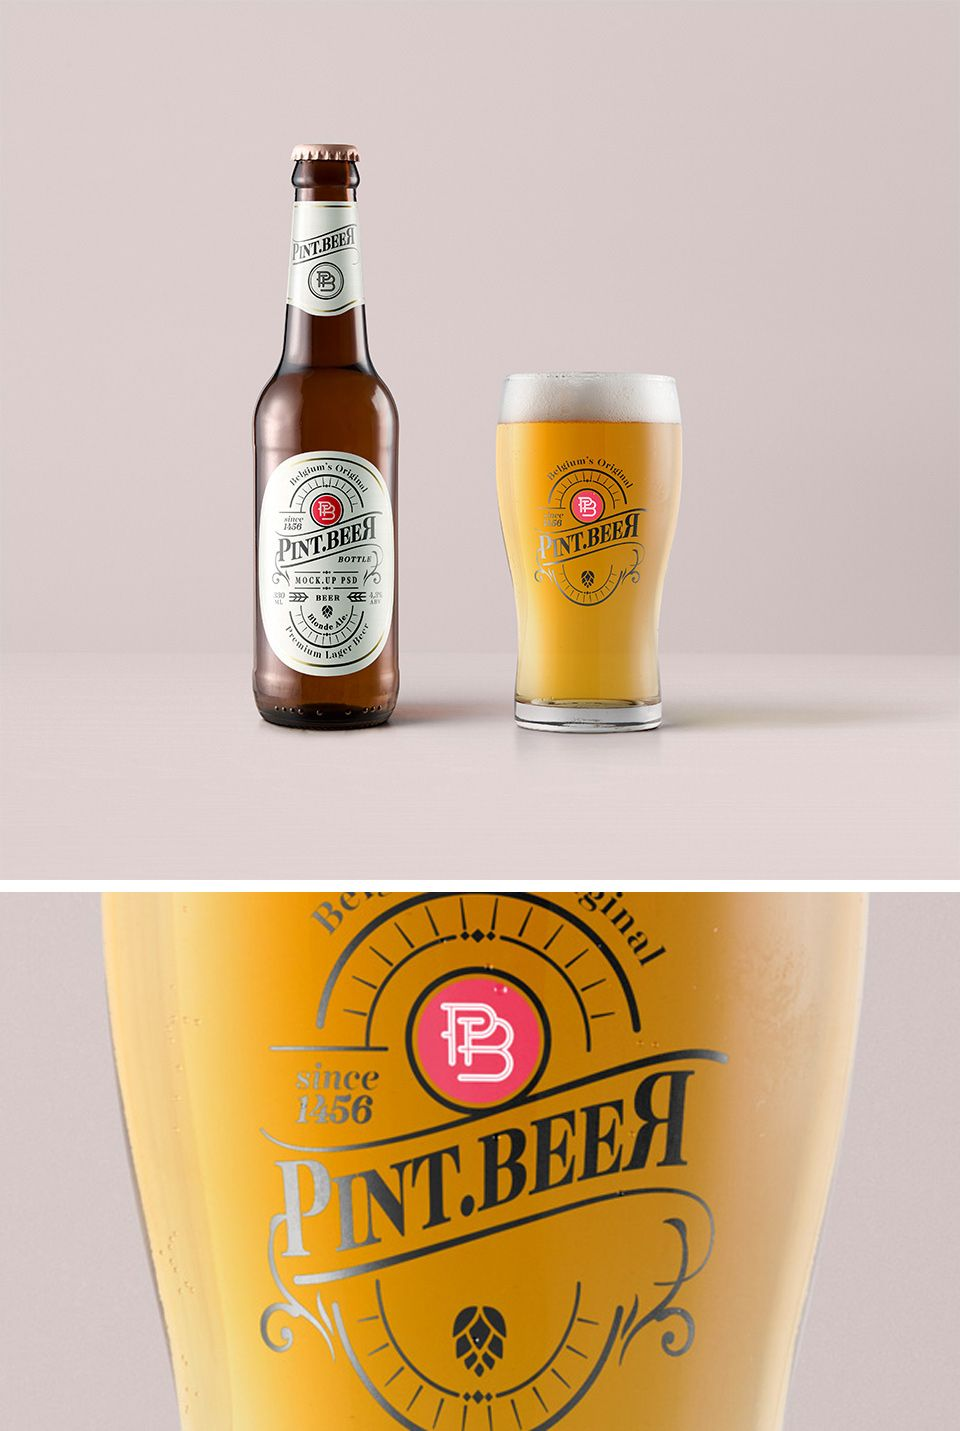 Free Amber Beer Bottle With Pint Glass Mockup Amber Beer Beer Bottle Bottle Mockup